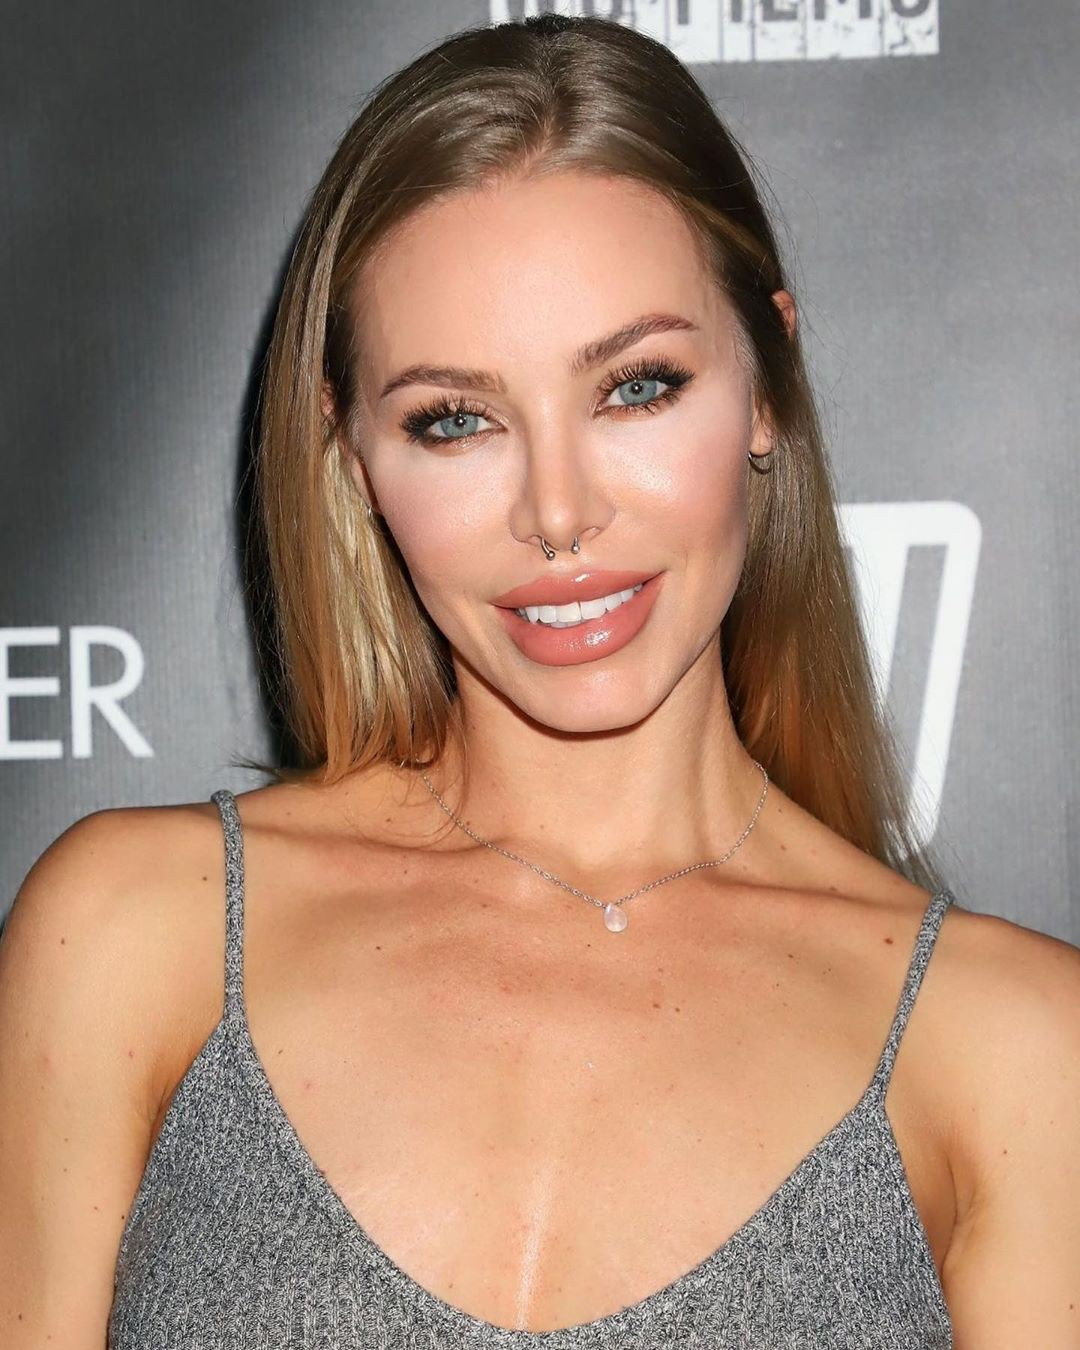 Nicole Aniston blond hairs, Lovely Face, Natural Lipstick